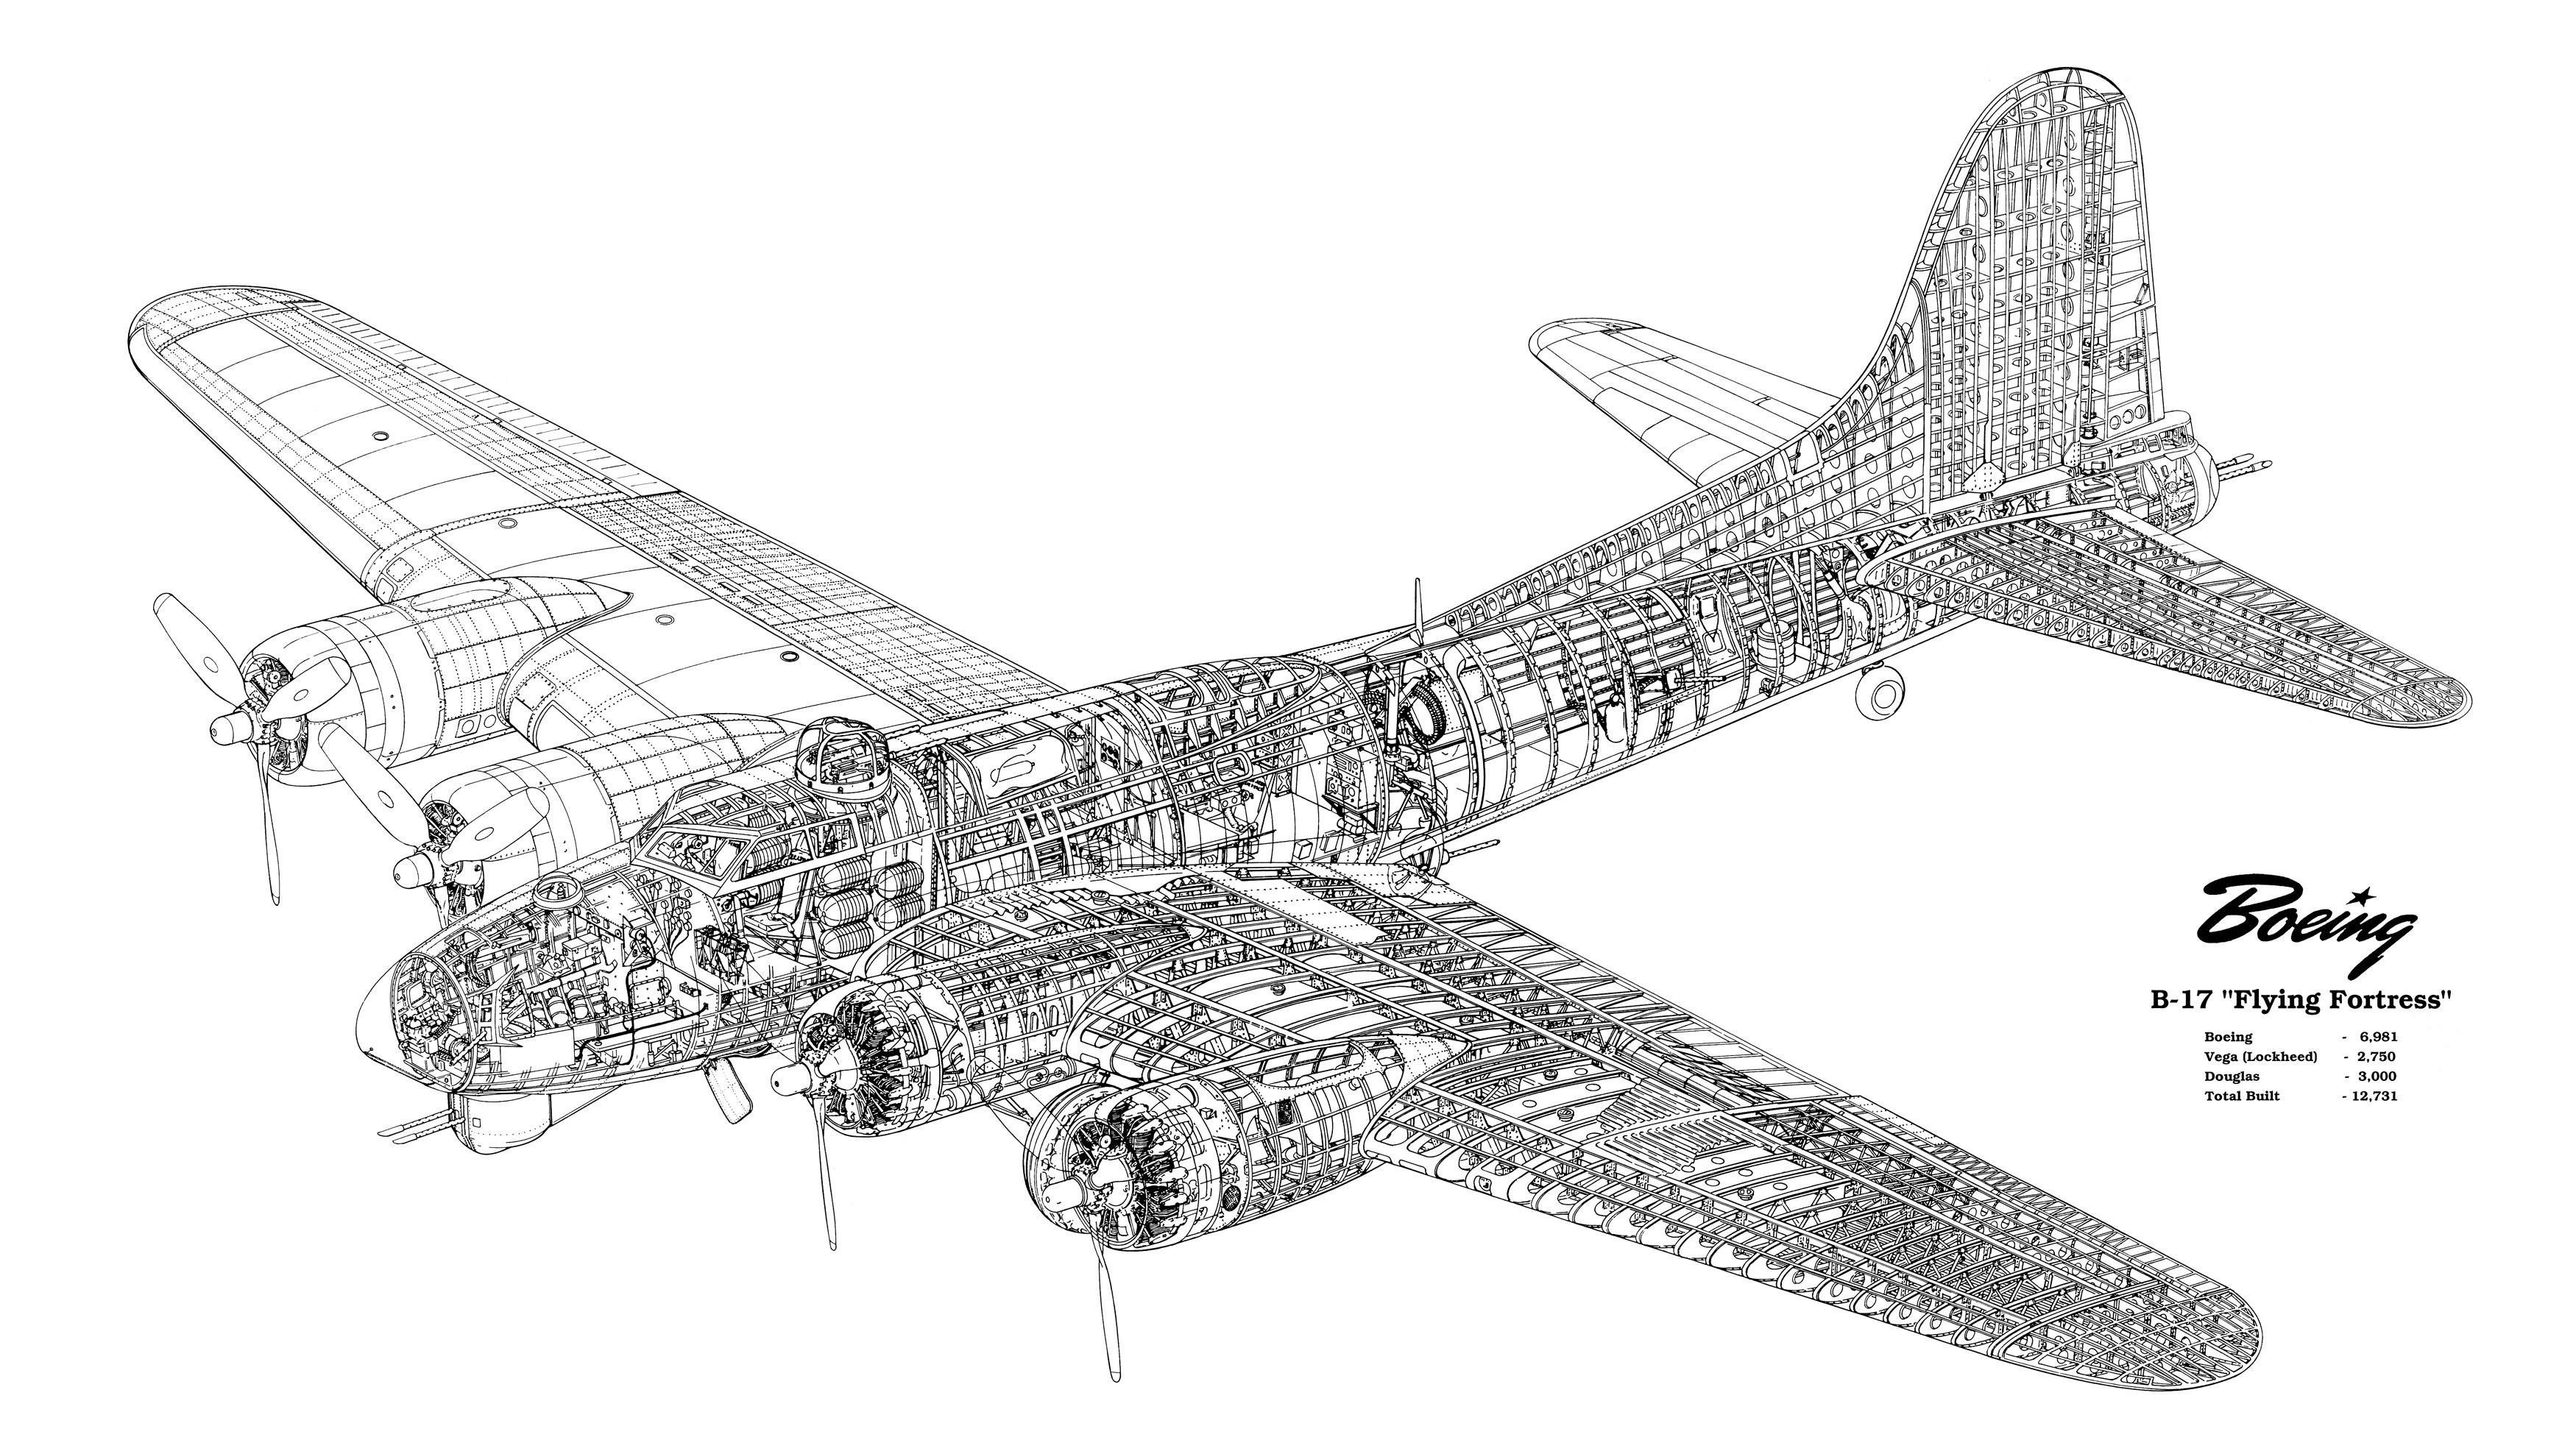 B 17 Engine Diagram Schematic Diagrams P 51 Boeing Drawings Or Schematics Diy Enthusiasts Wiring U2022 Of The North American